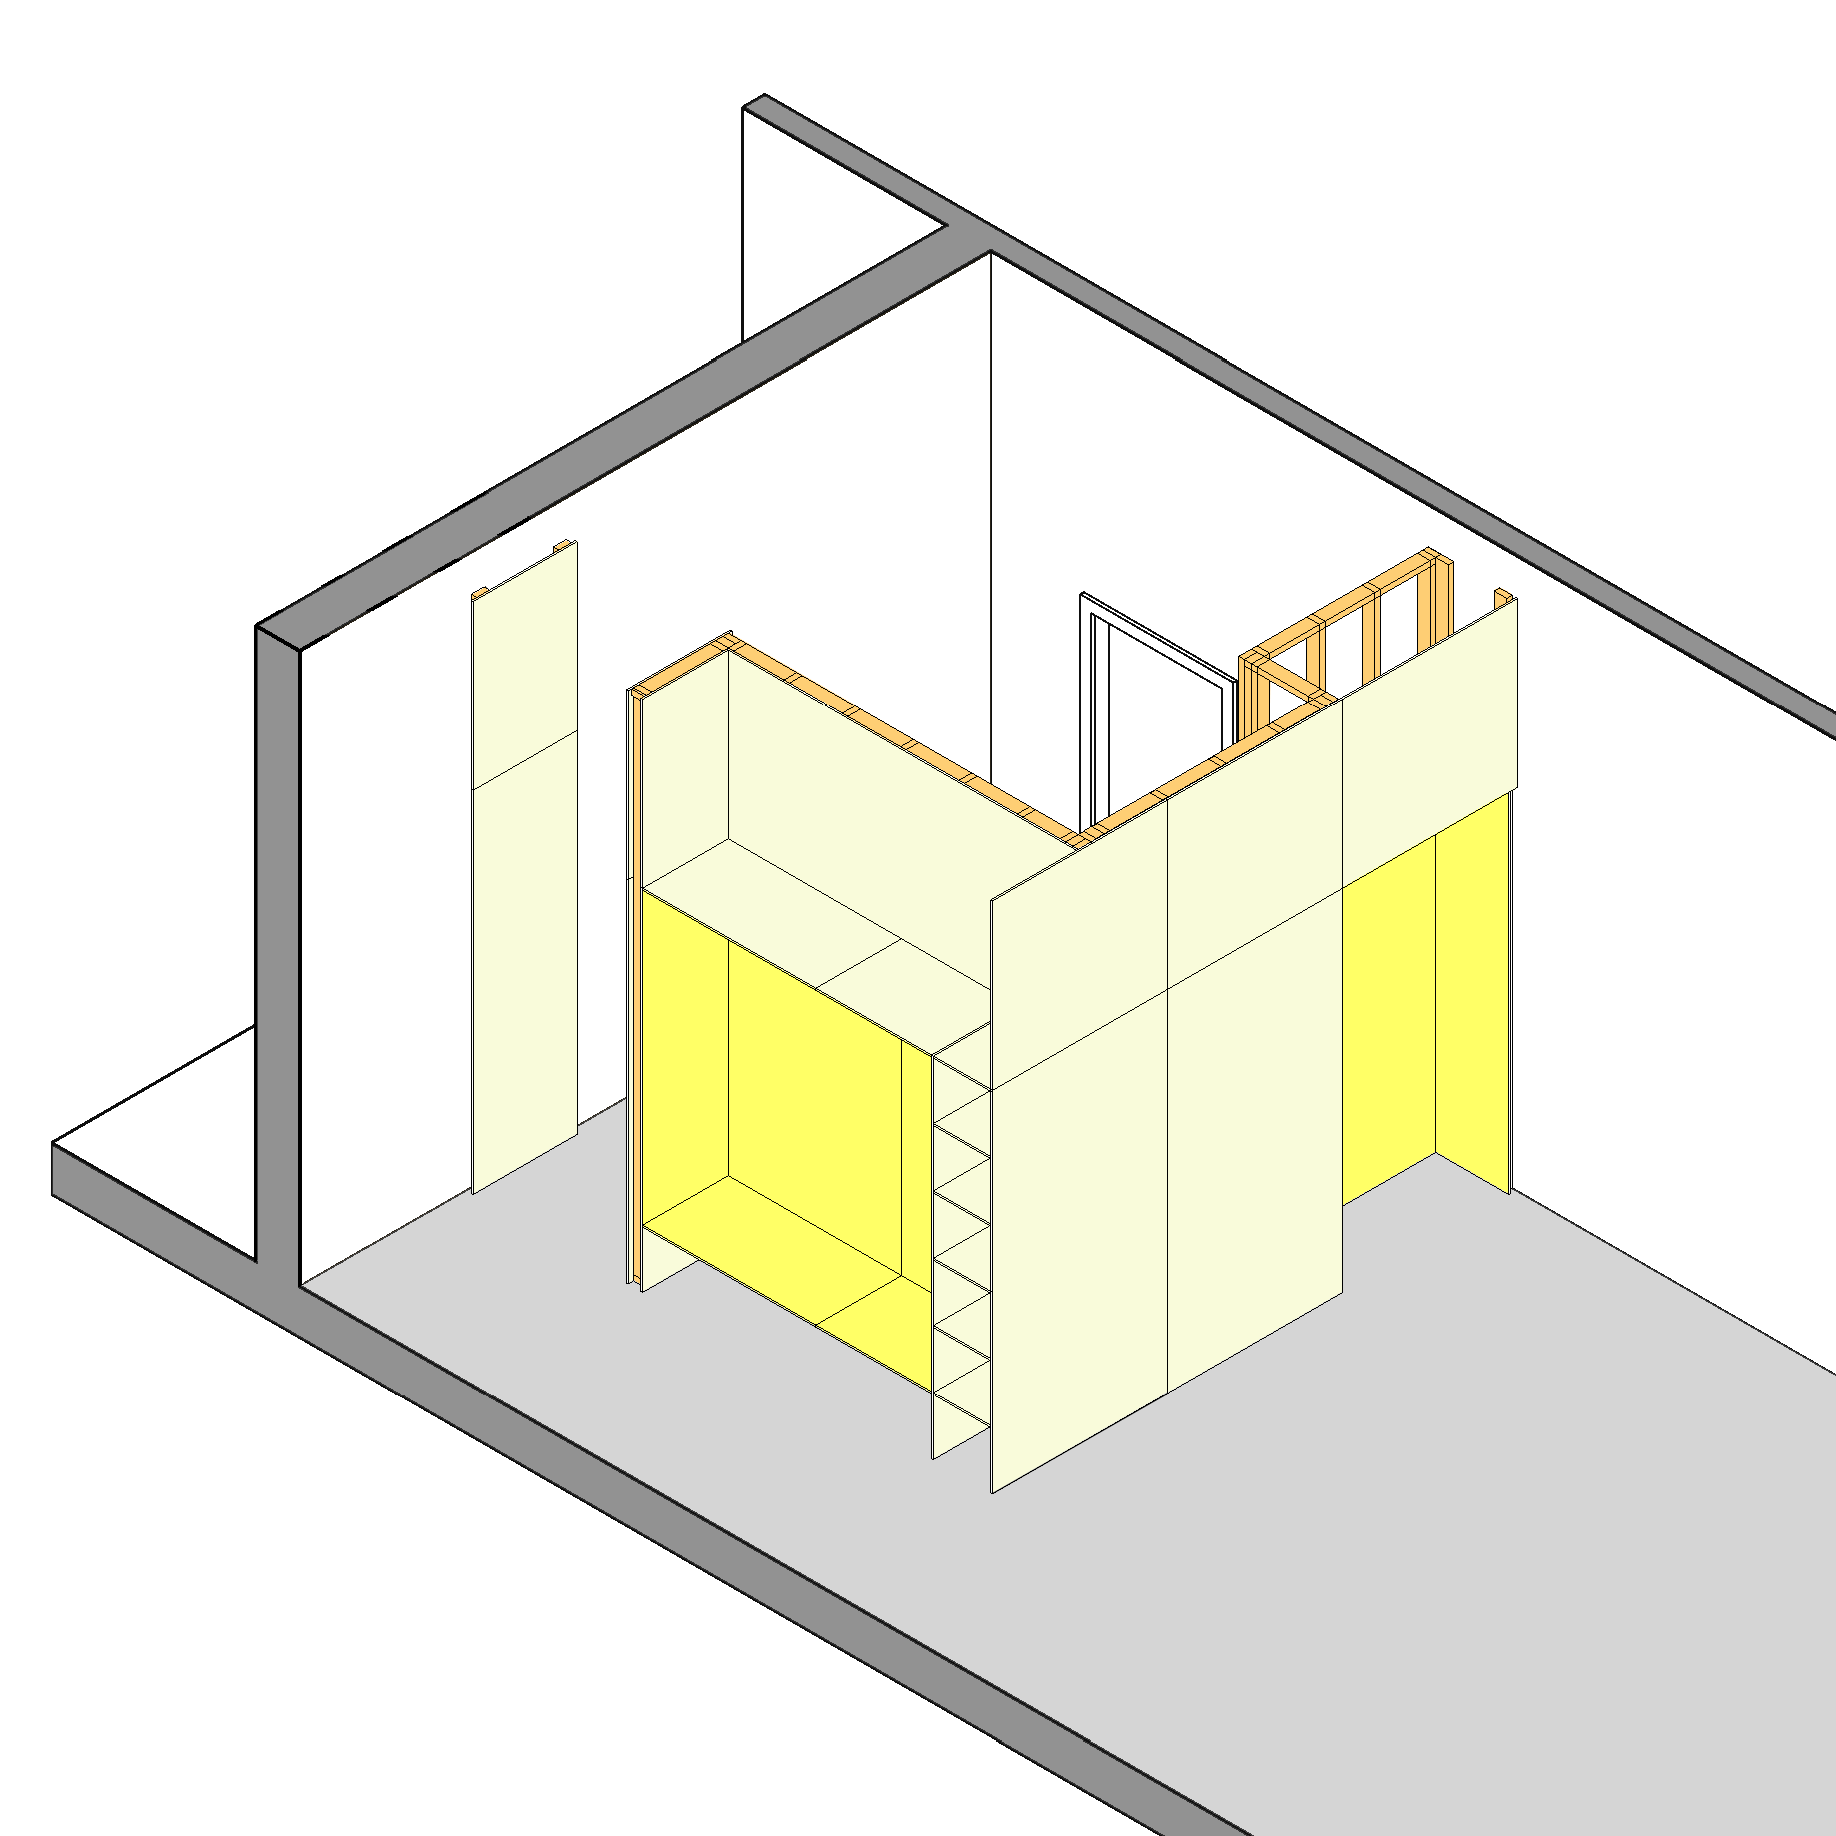 Lee-Residence_diagram02.png